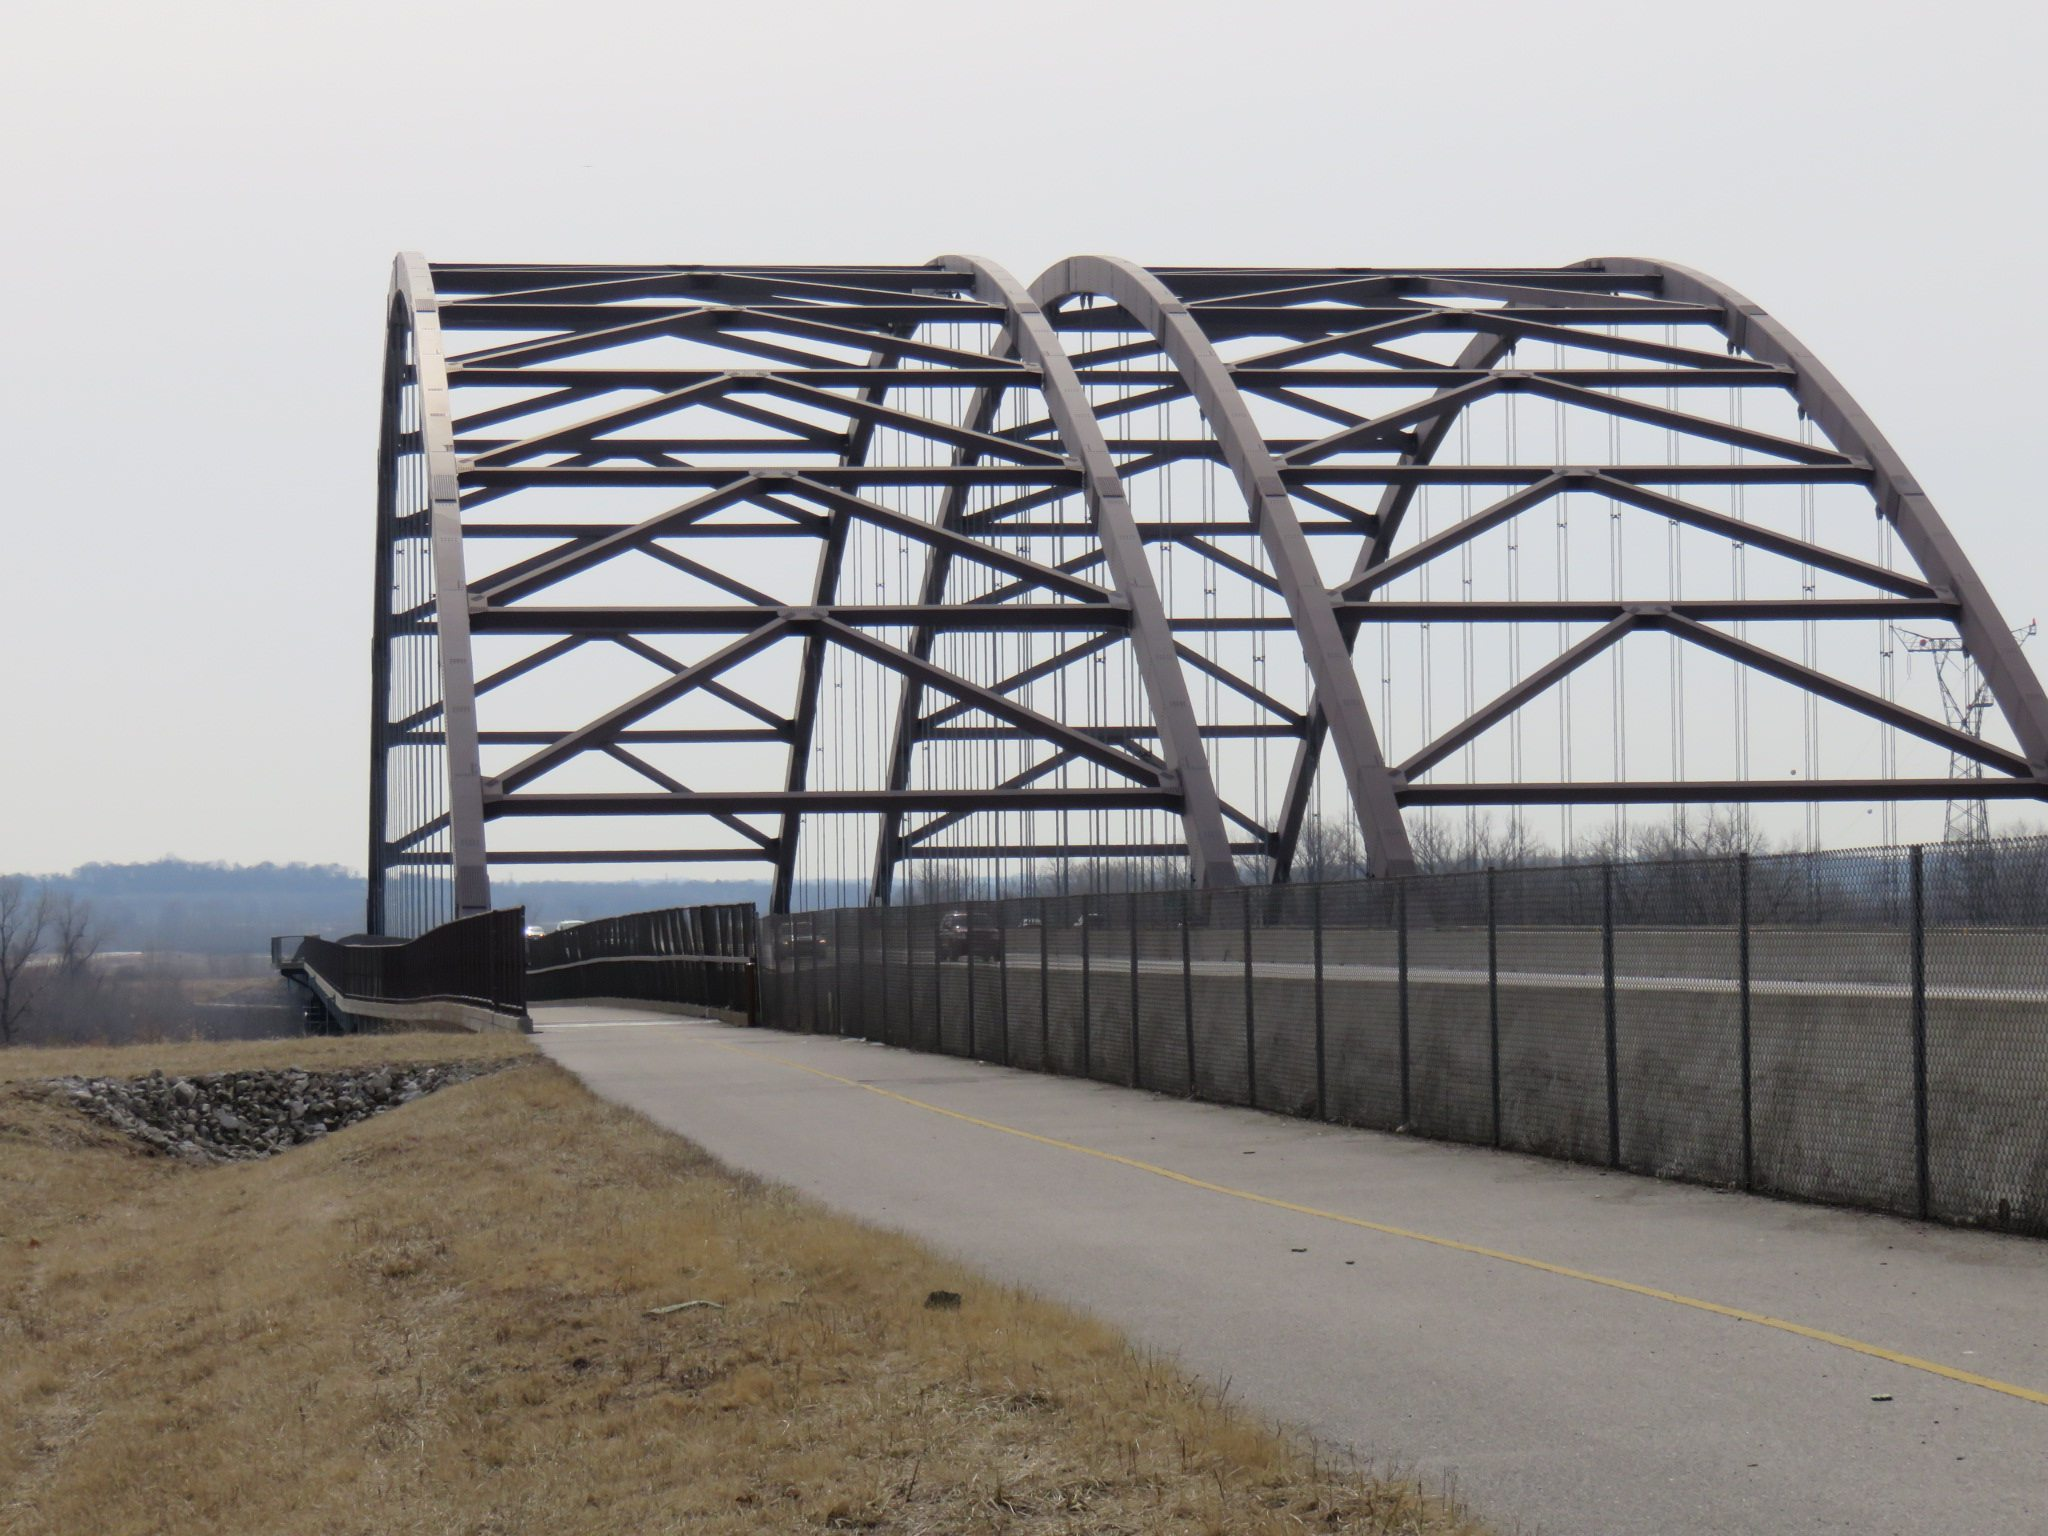 Ride Your Bike from St. Charles to Creve Coeur Park